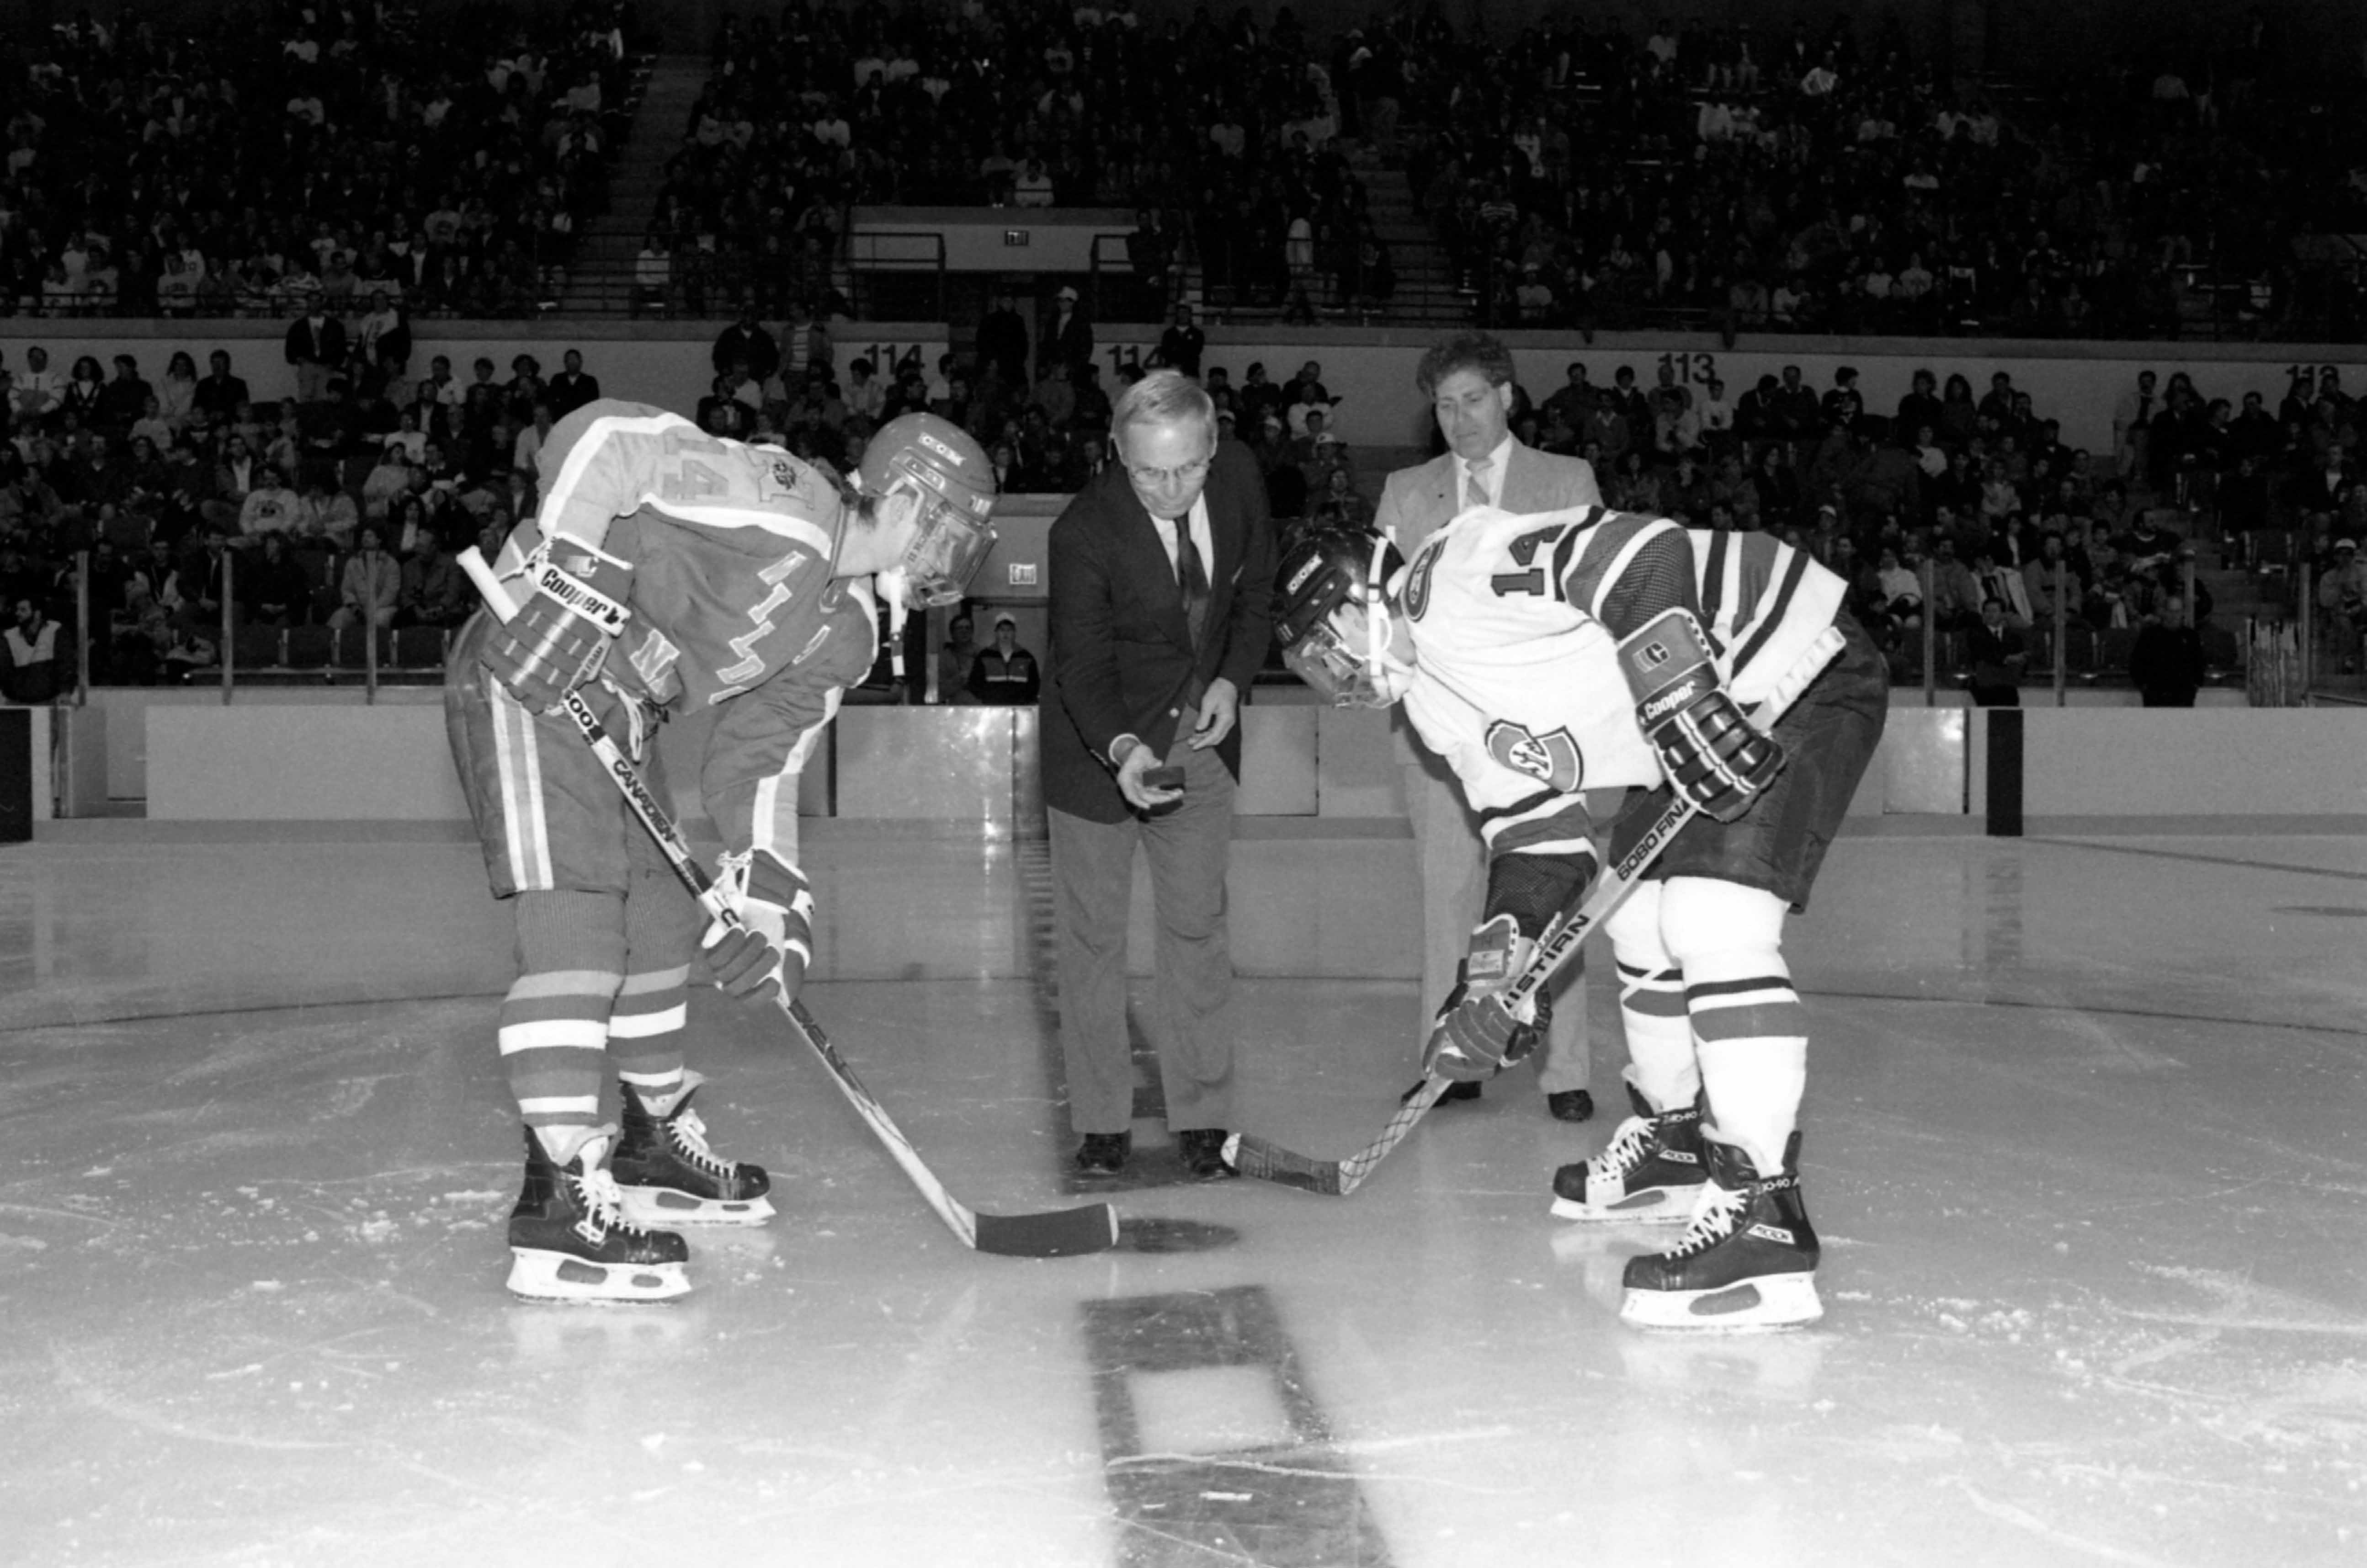 Puck is dropped at first NHC game, December 1989